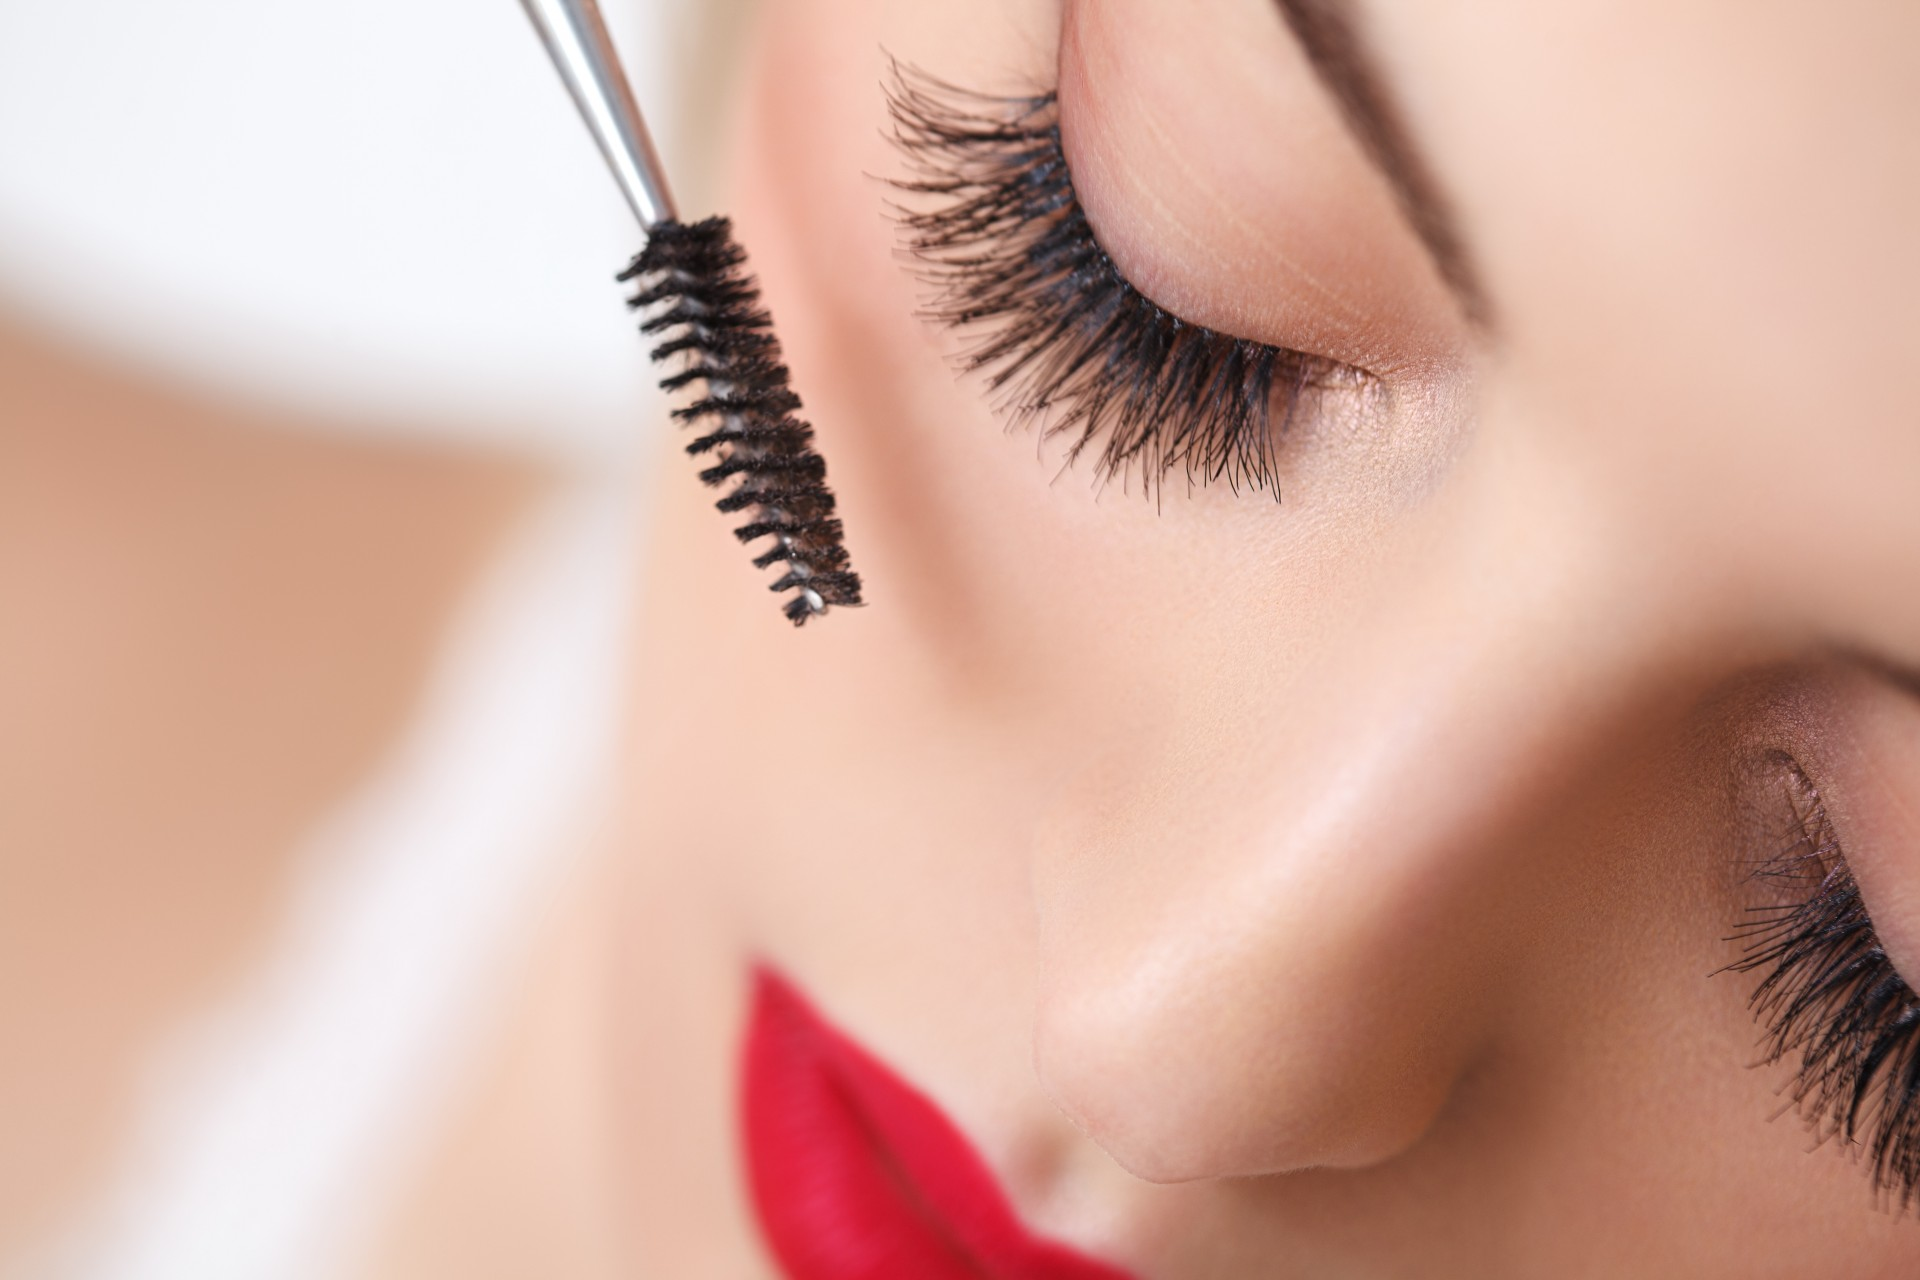 Flutter those lashes Beauties!